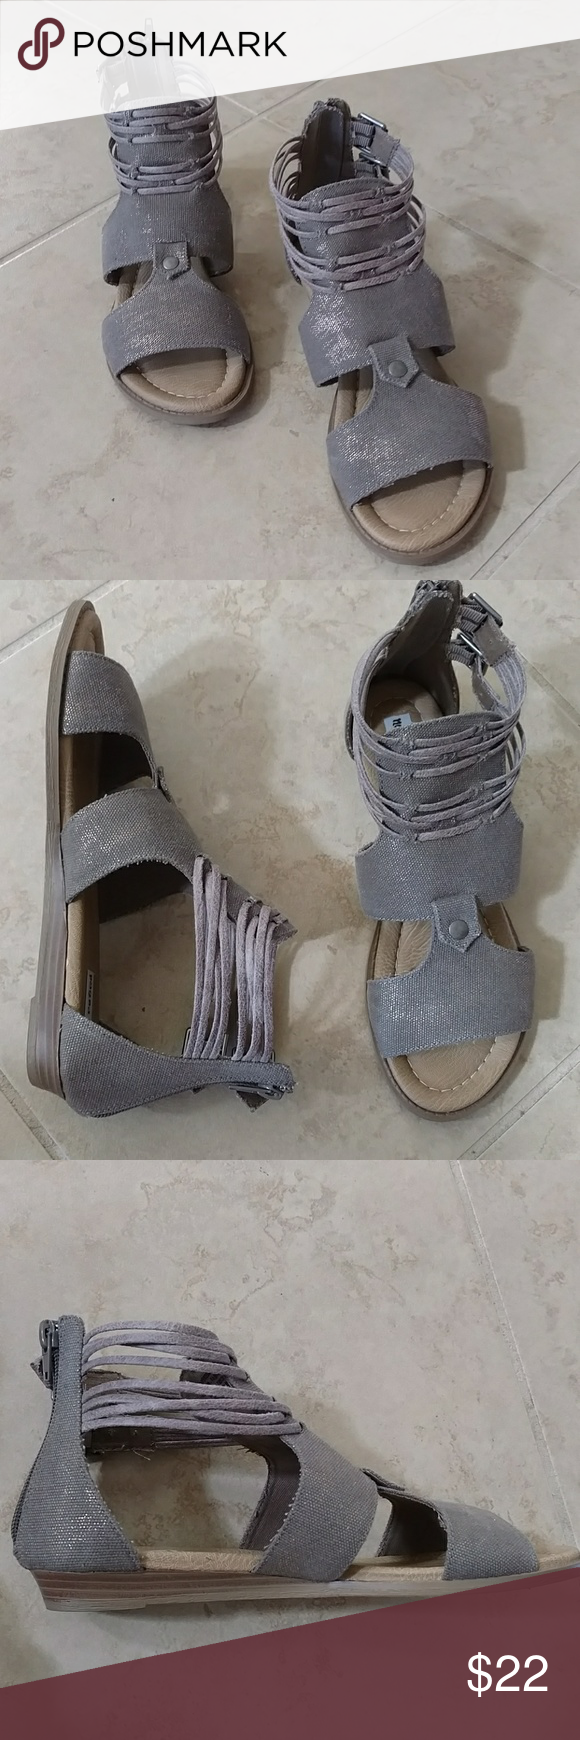 Not Rated Eleonora Taupe Wedge Sandals. Sz. 8 Taupe color with slight rose gold metallic sheen that catches the light. Fabric upper. Low wedge 1 Inch heel sandals. Ankle strap design with side buckles. Back zip closure. Very good condition, never worn outside. Not Rated Shoes Wedges #lowwedgesandals Not Rated Eleonora Taupe Wedge Sandals. Sz. 8 Taupe color with slight rose gold metallic sheen that catches the light. Fabric upper. Low wedge 1 Inch heel sandals. Ankle strap design with side buck #lowwedgesandals